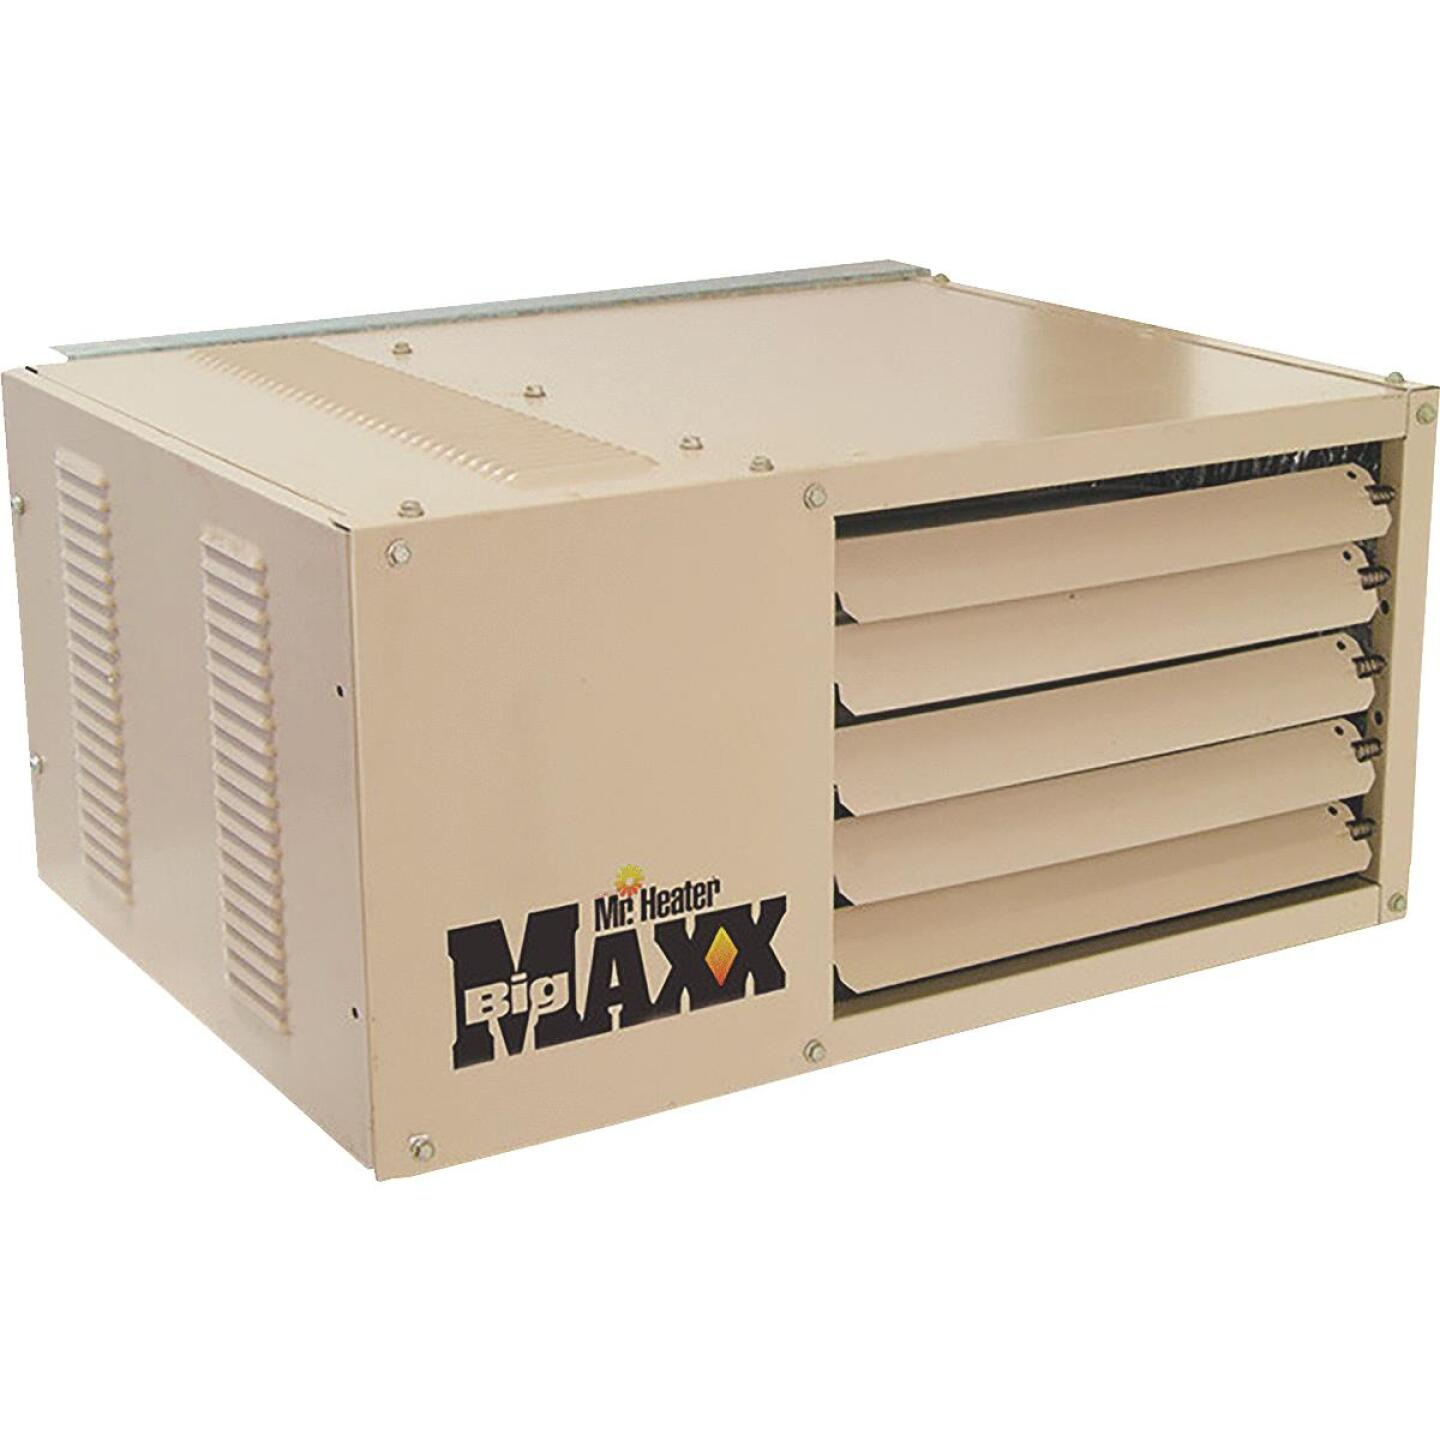 MR. HEATER Big Maxx 50,000 BTU Natural Gas Garage Heater Image 1